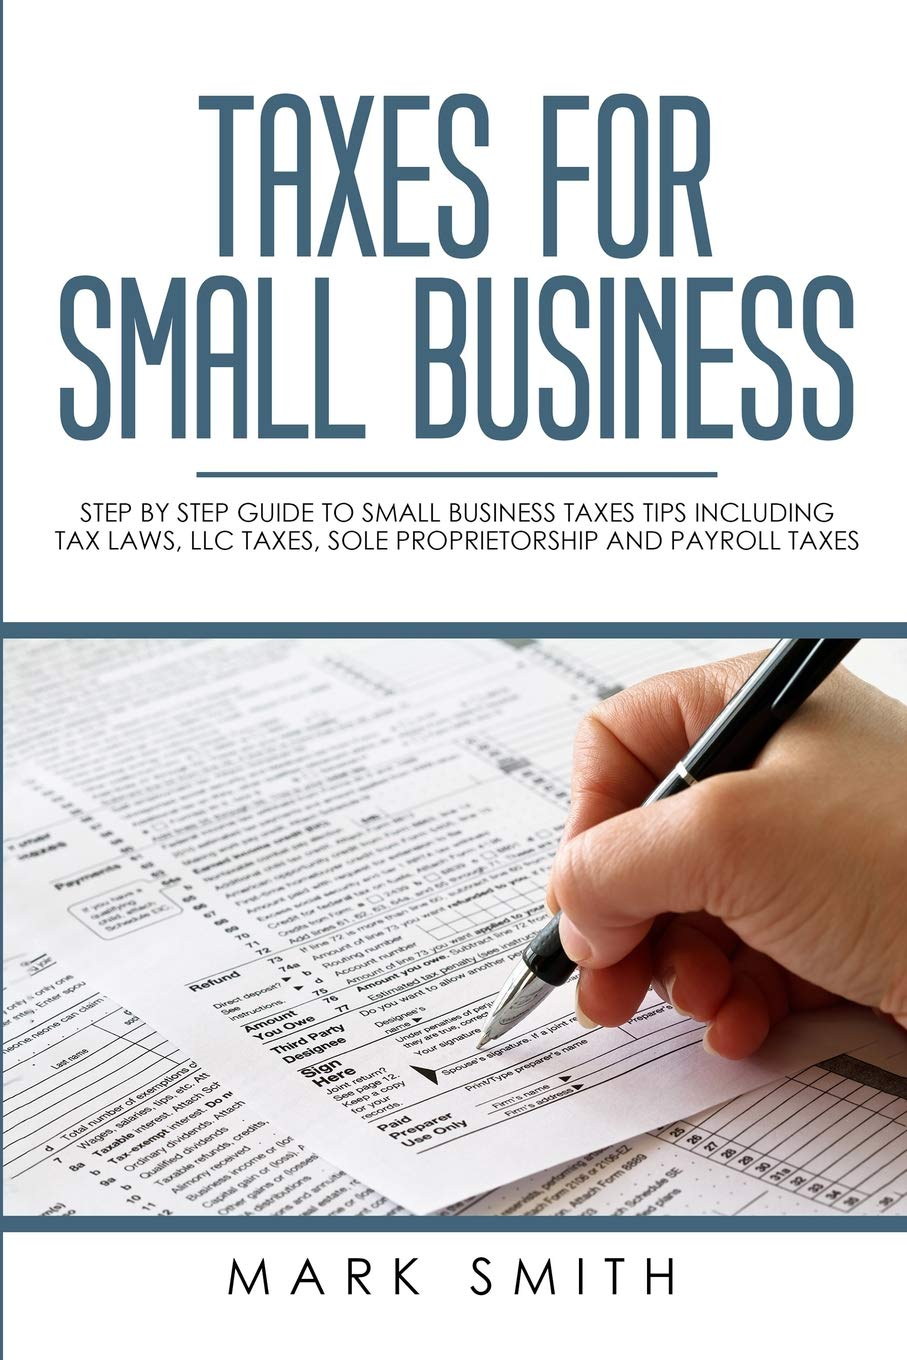 Small Business: A Complete Guide to Accounting Principles